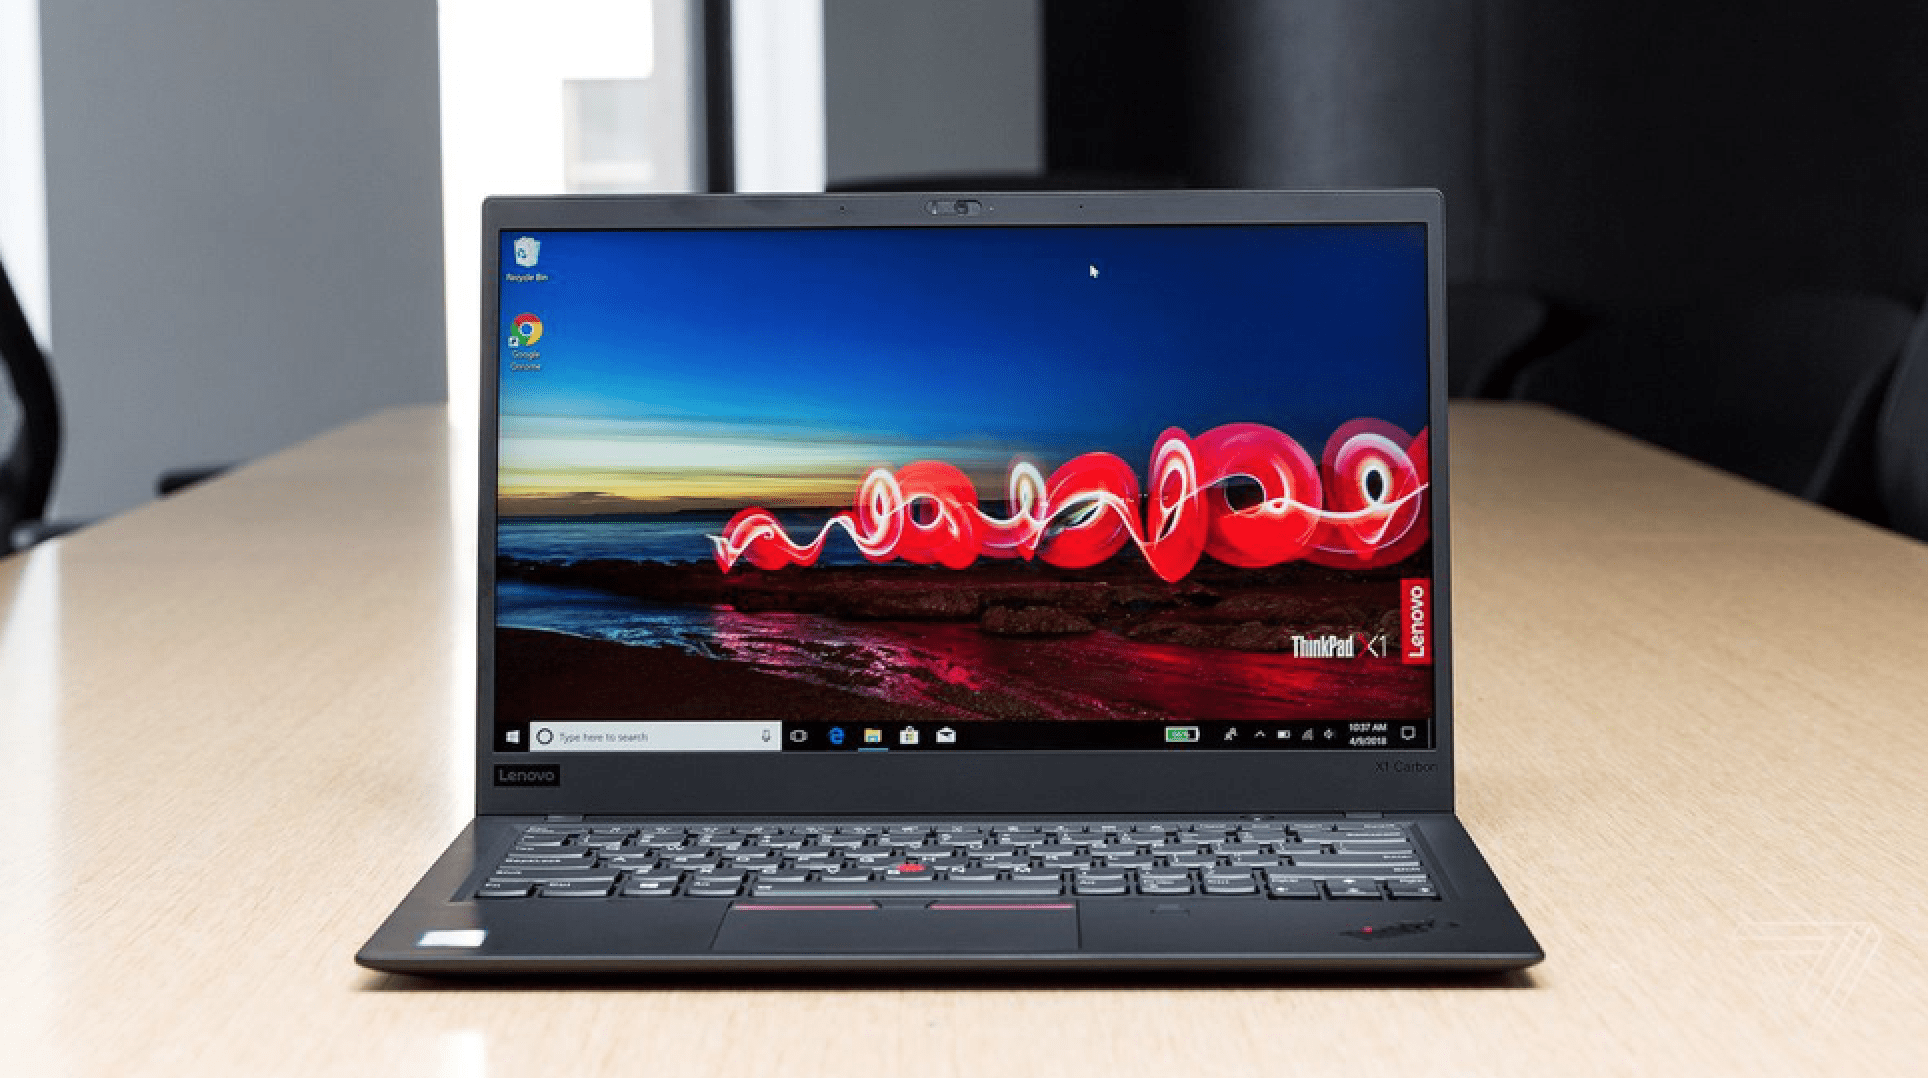 Buy these exciting Lenovo laptops on No Cost EMI this Xmas